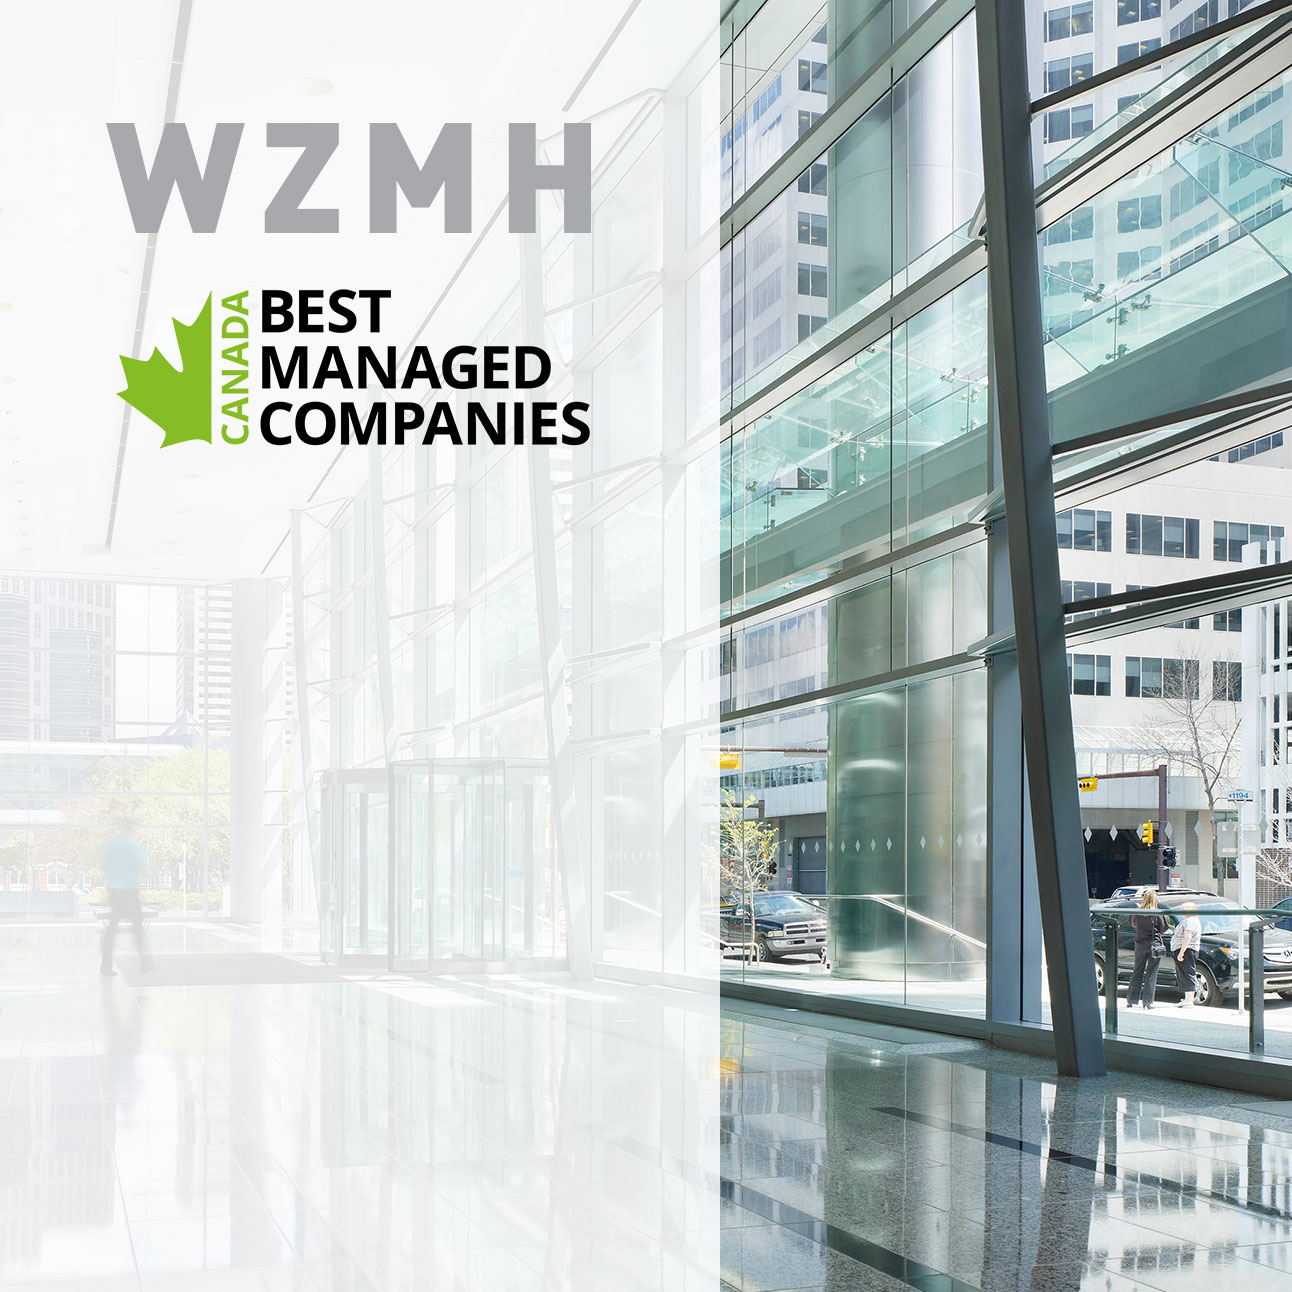 WZMH named one of Canada's Best Managed Companies | WZMH